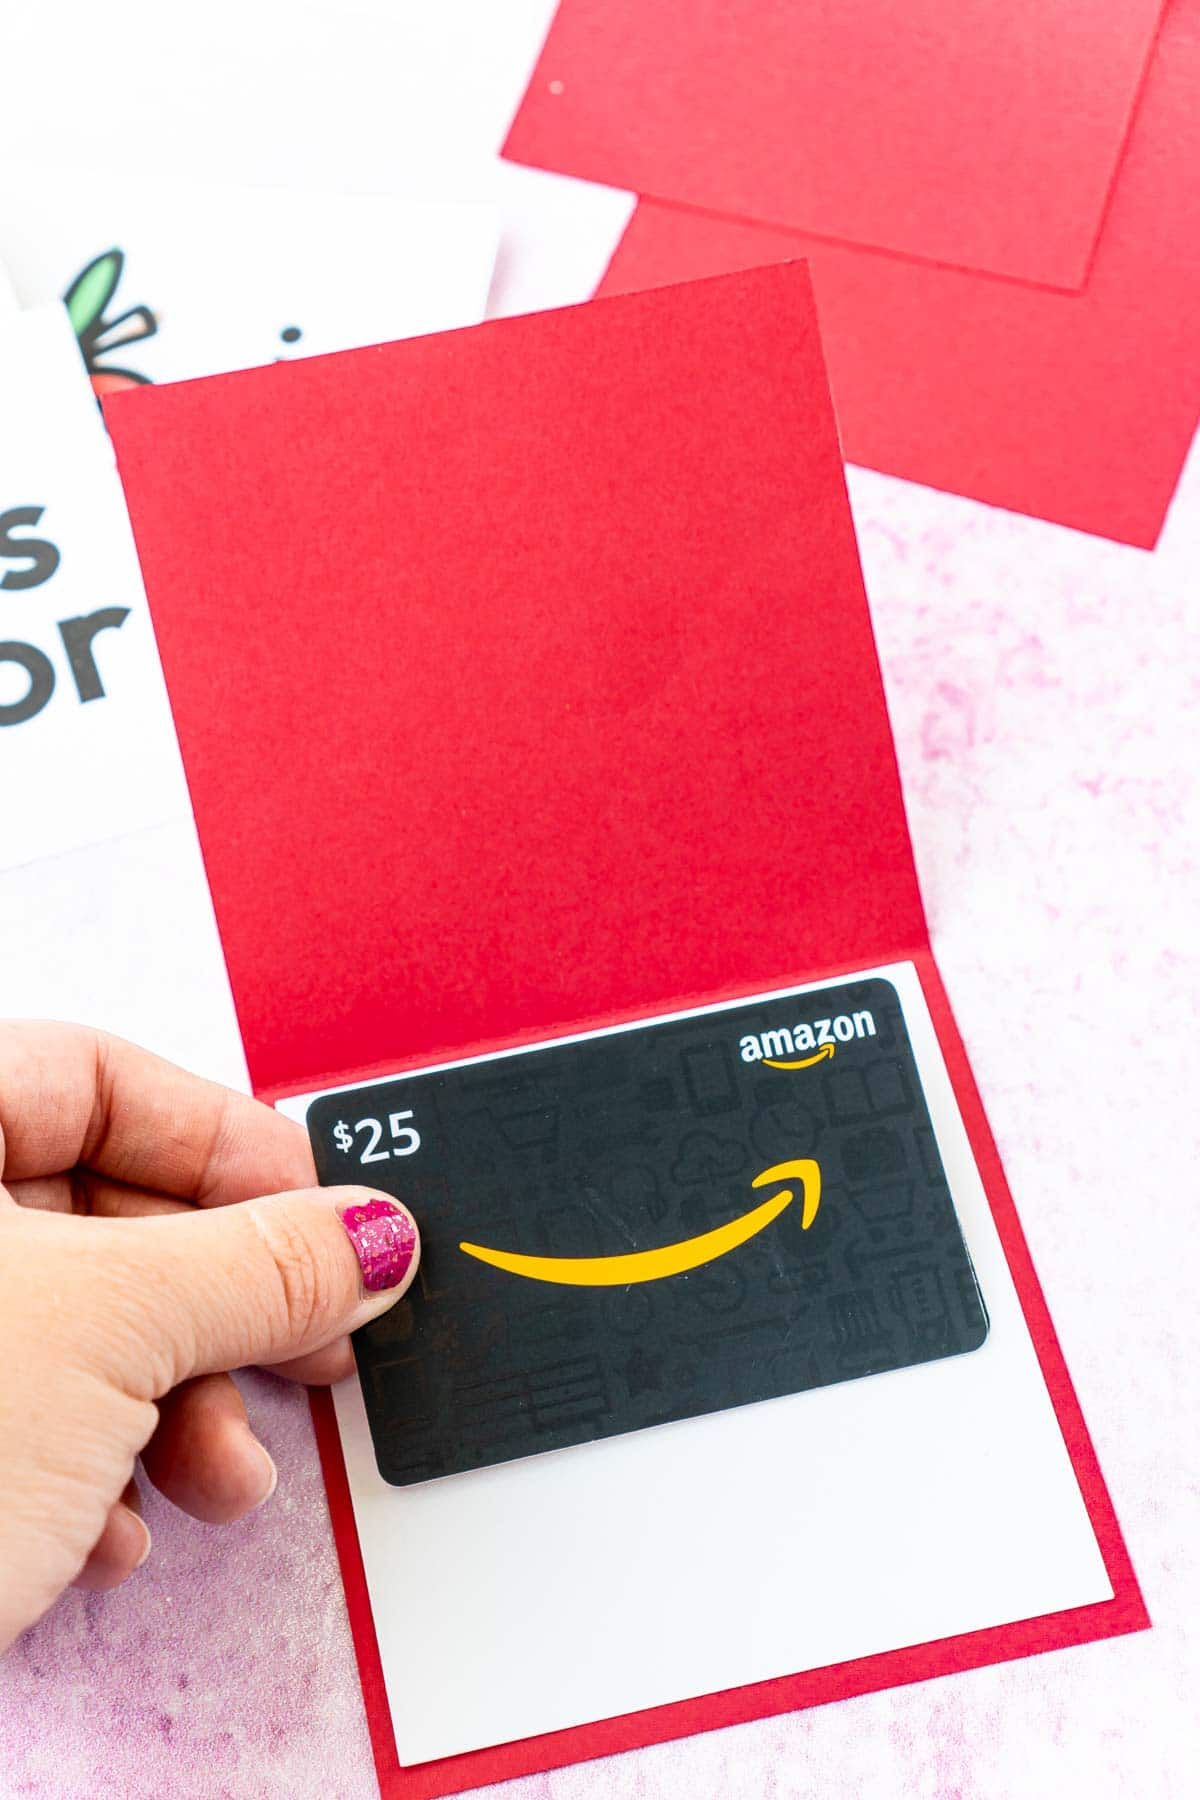 Woman's hand adding a gift card to a red card